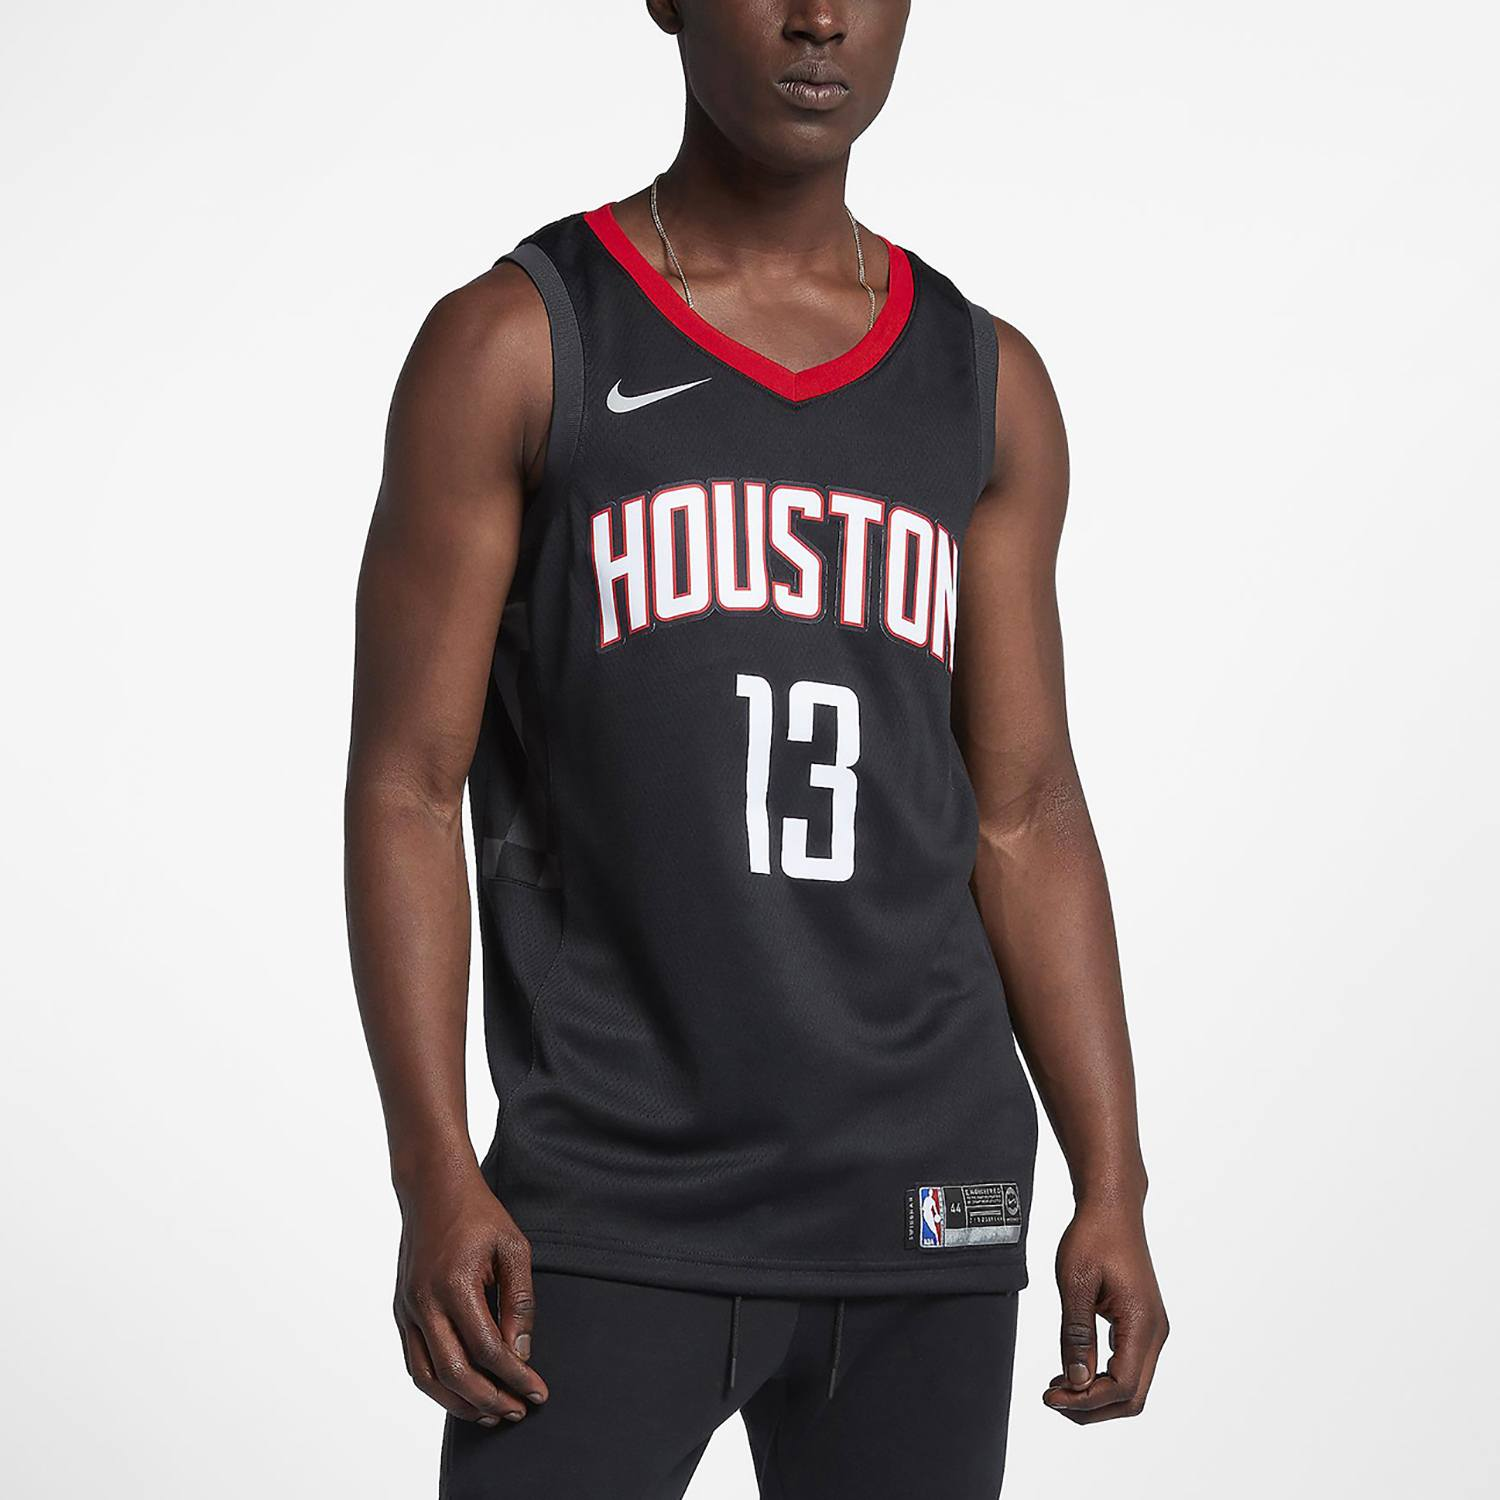 ed8629f38 Nike NBA Houston Rockets James Harden Statement Edition Swingman Jersey - NBA  Shop Houston Rockets Merchandise - Superfanas.lt